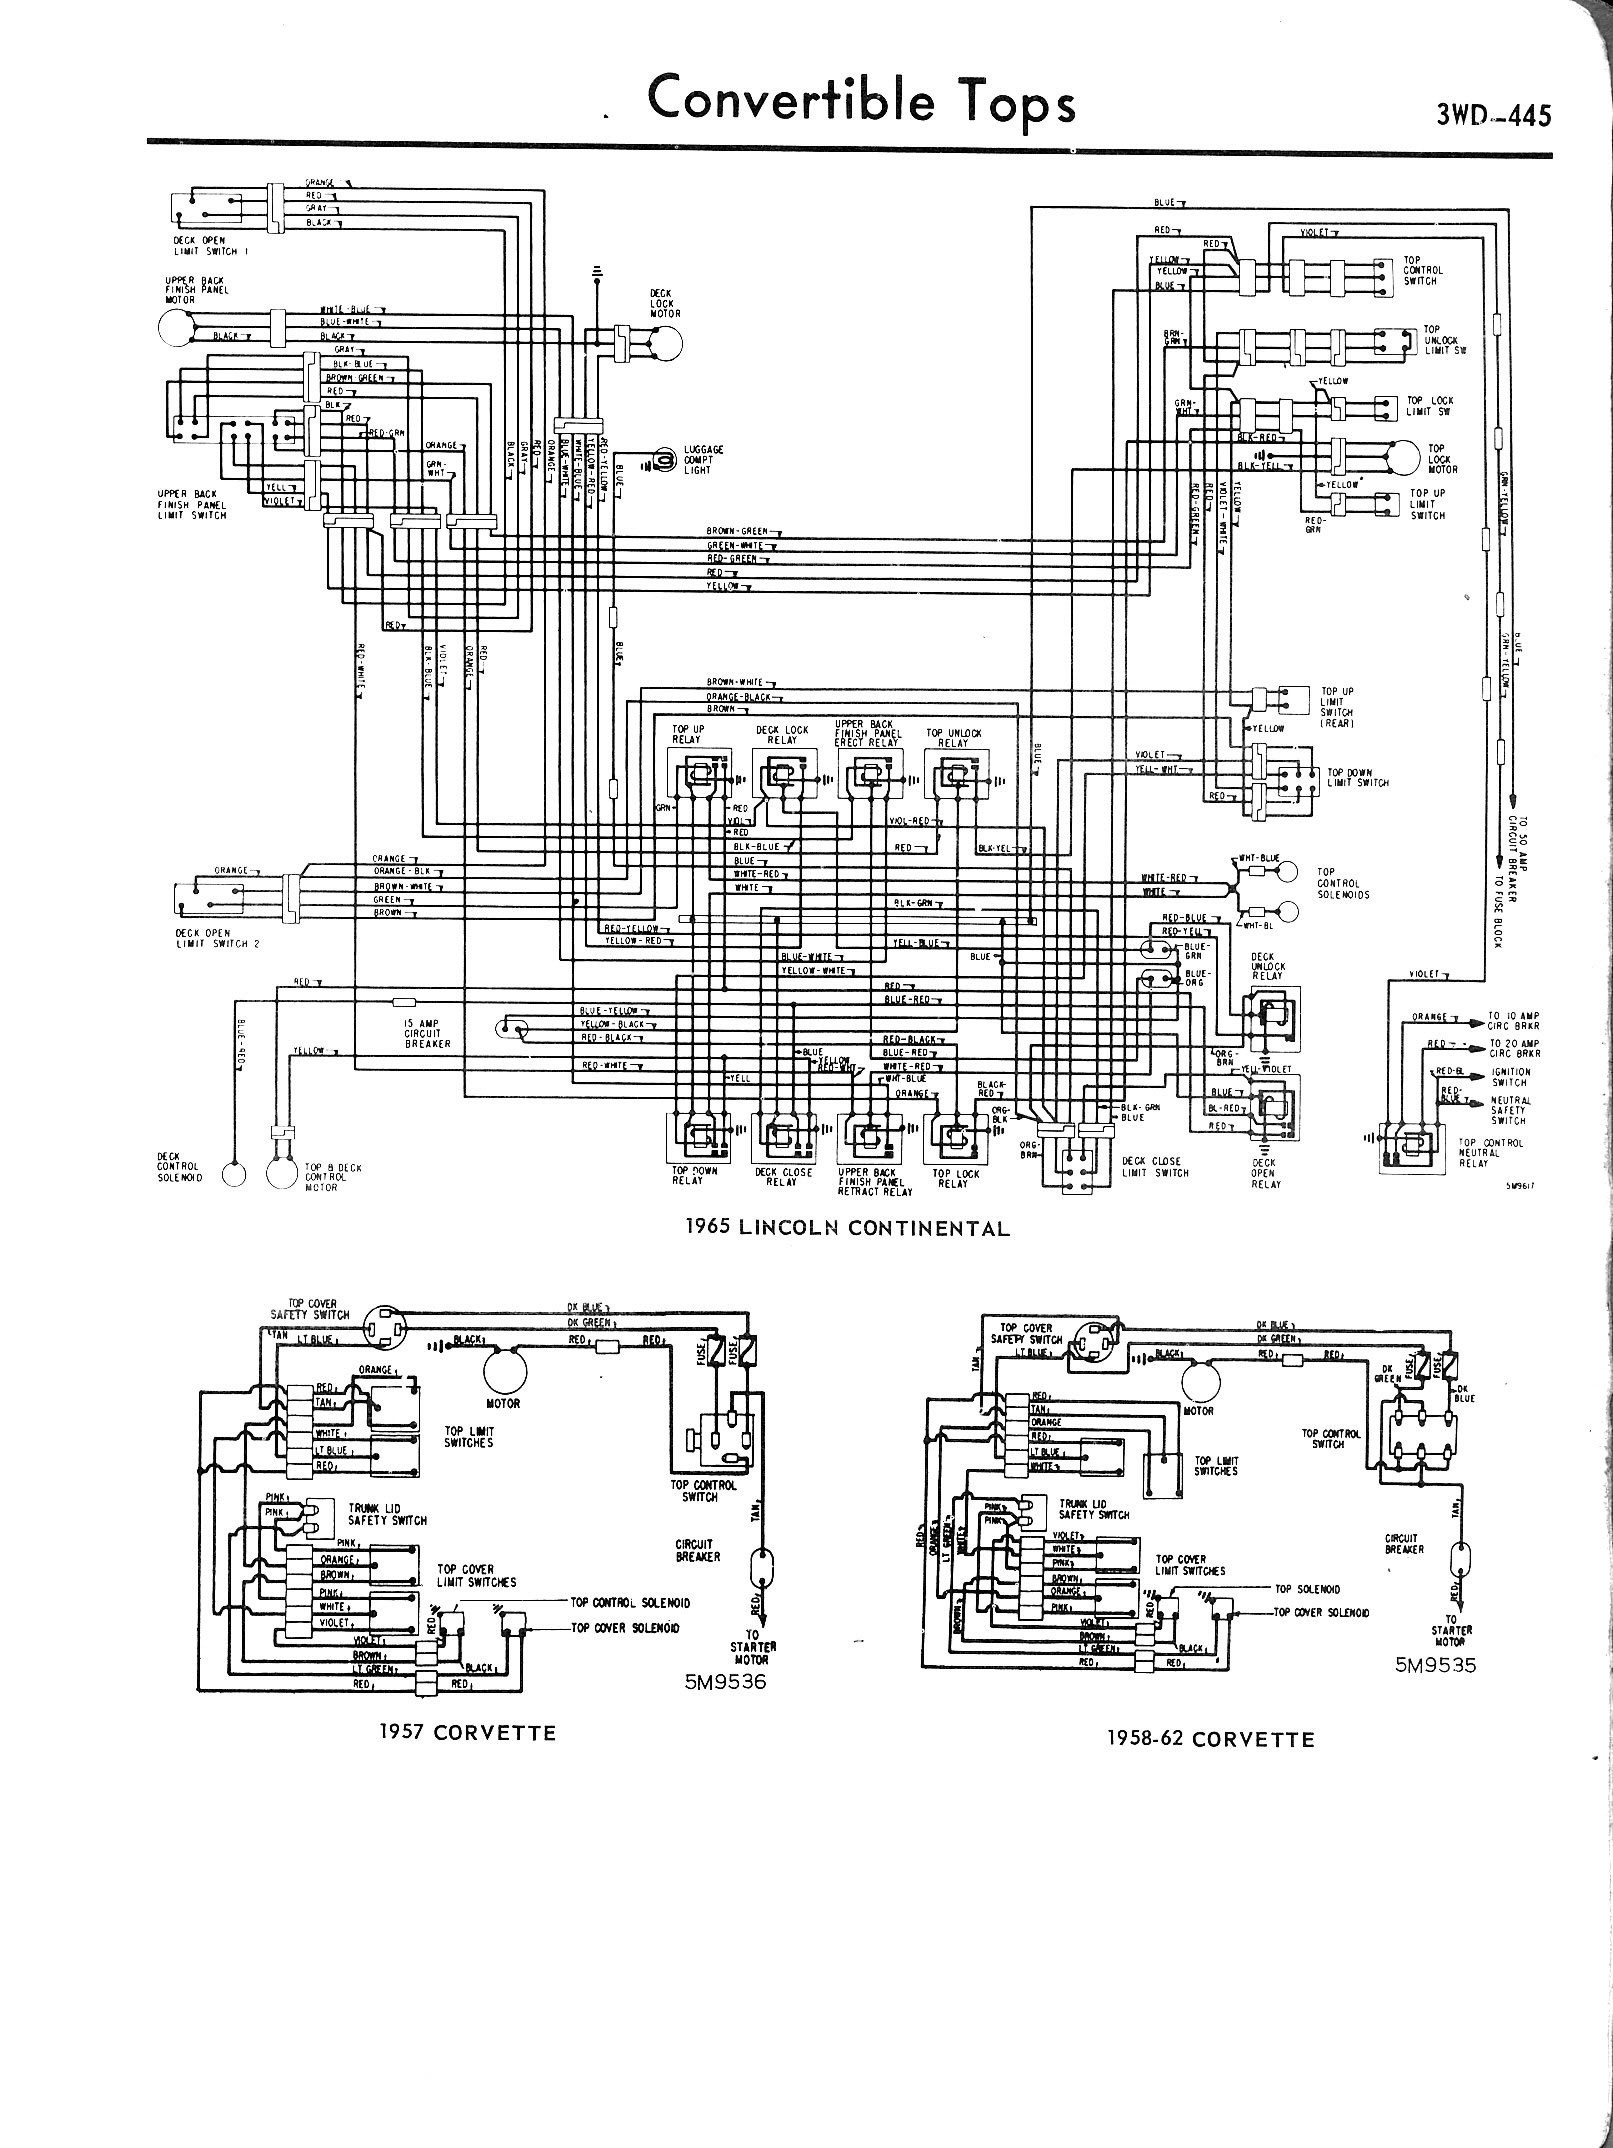 Ford Fairlane And Ranchero Color Laminated Wiring Diagram 1957 1959 together with Wiring Diagram 1963 Chevy 350 Truck together with 1966 Ford F100 Wiring Diagram Body as well Wiring Diagram For 1981 Corvette as well 1957 Chevy Horn Wiring Diagram. on 1958 corvette wiring harness